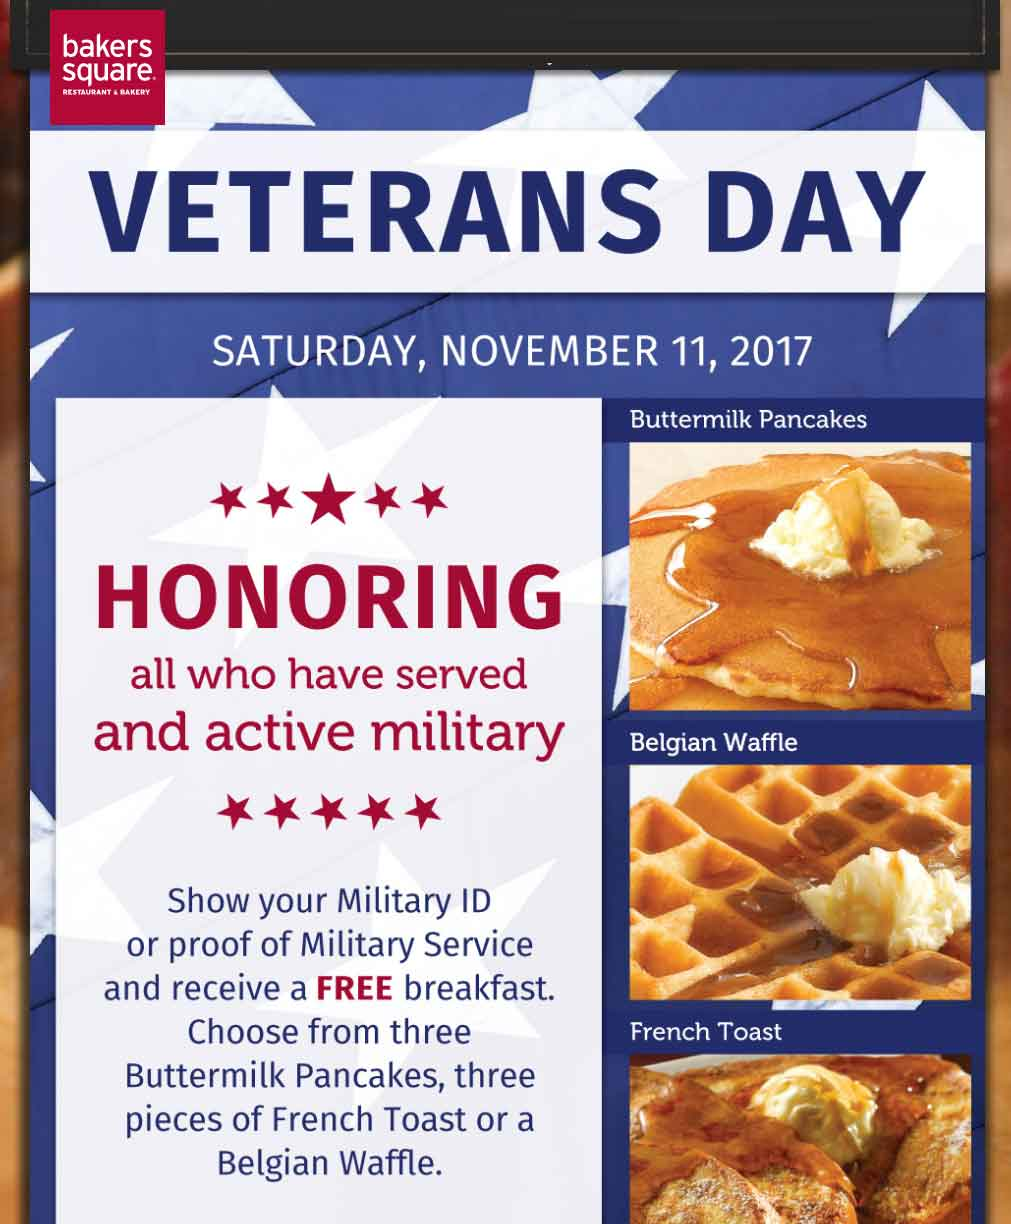 BakersSquare.com Promo Coupon Military ID gets you a free breakfast Saturday at Bakers Square